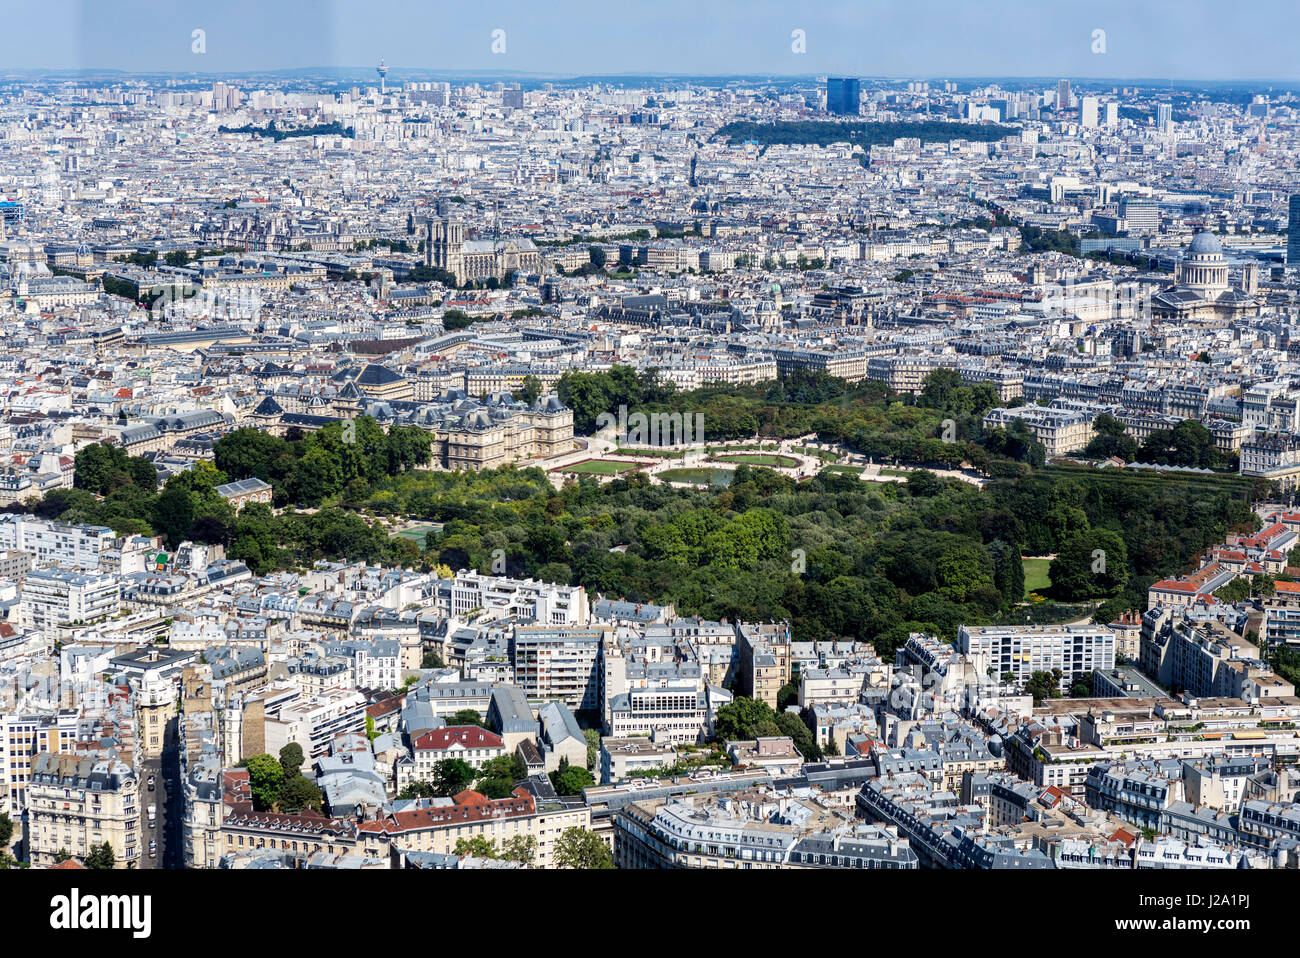 Aerial view of the Luxembourg Palace and Gardens from the observation deck at the top of the Tour Montparnasse, Stock Photo